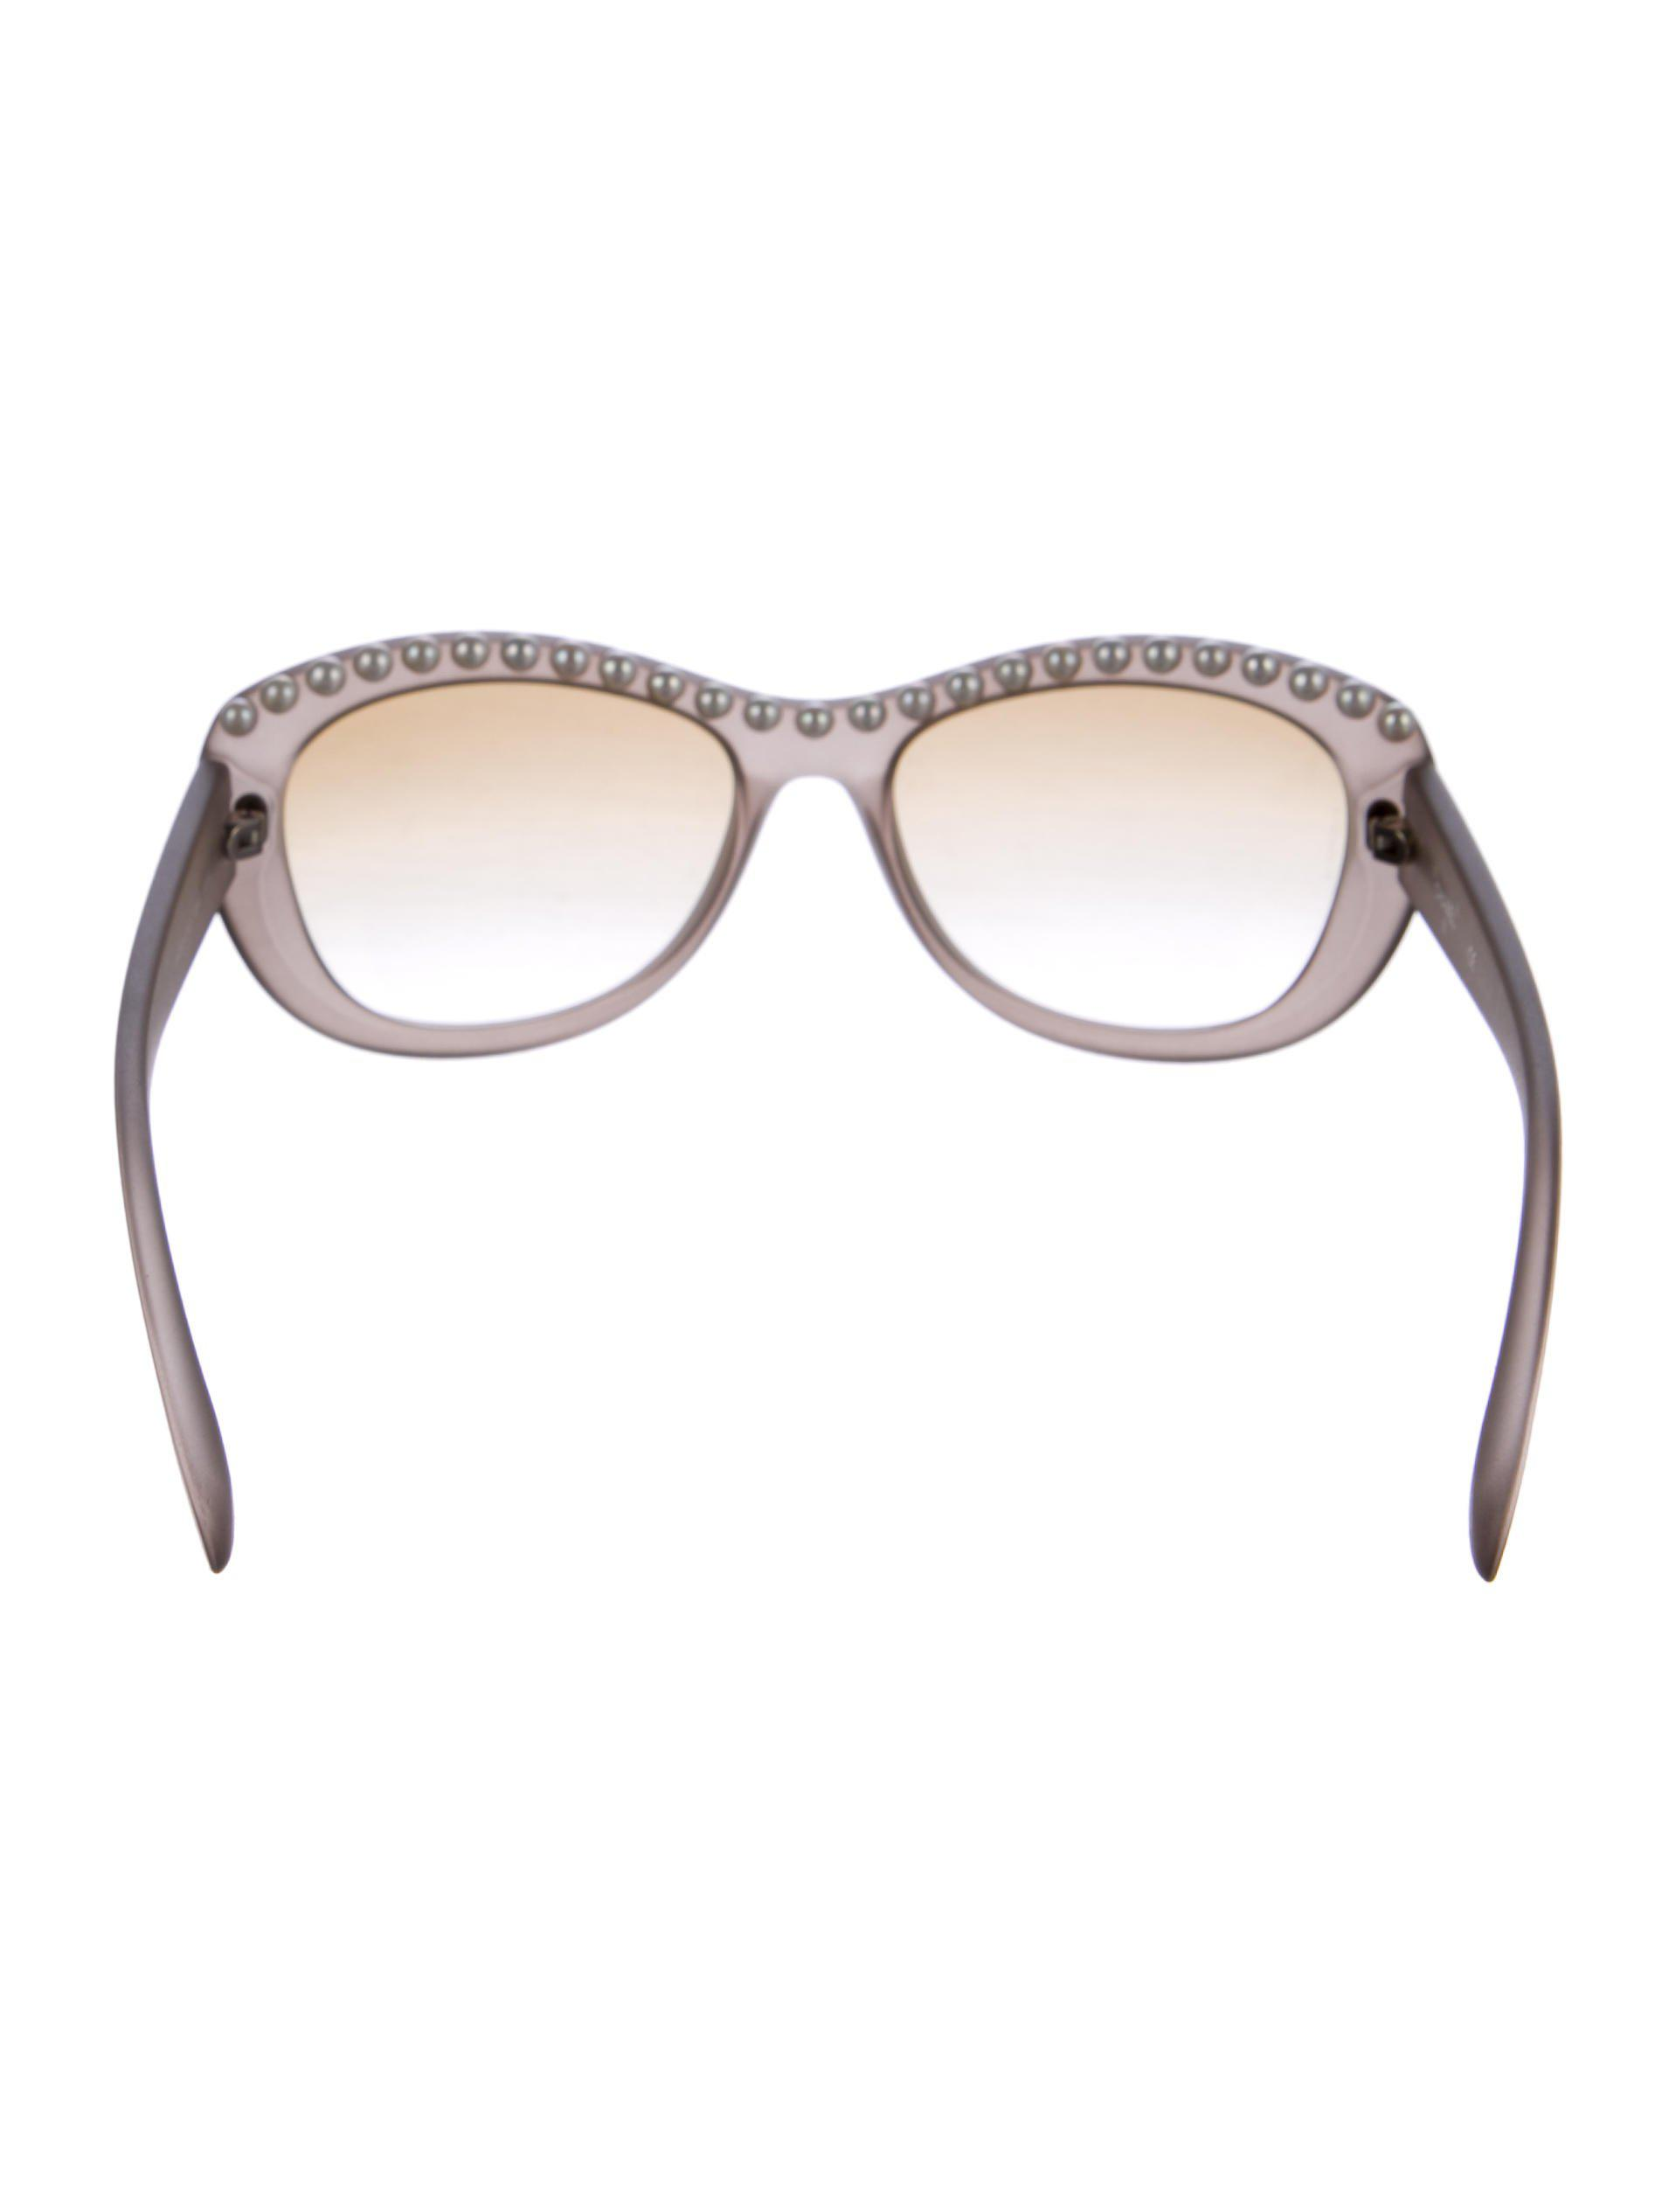 582a03a3cd9 Chanel Butterfly Pearl Sunglasses « One More Soul